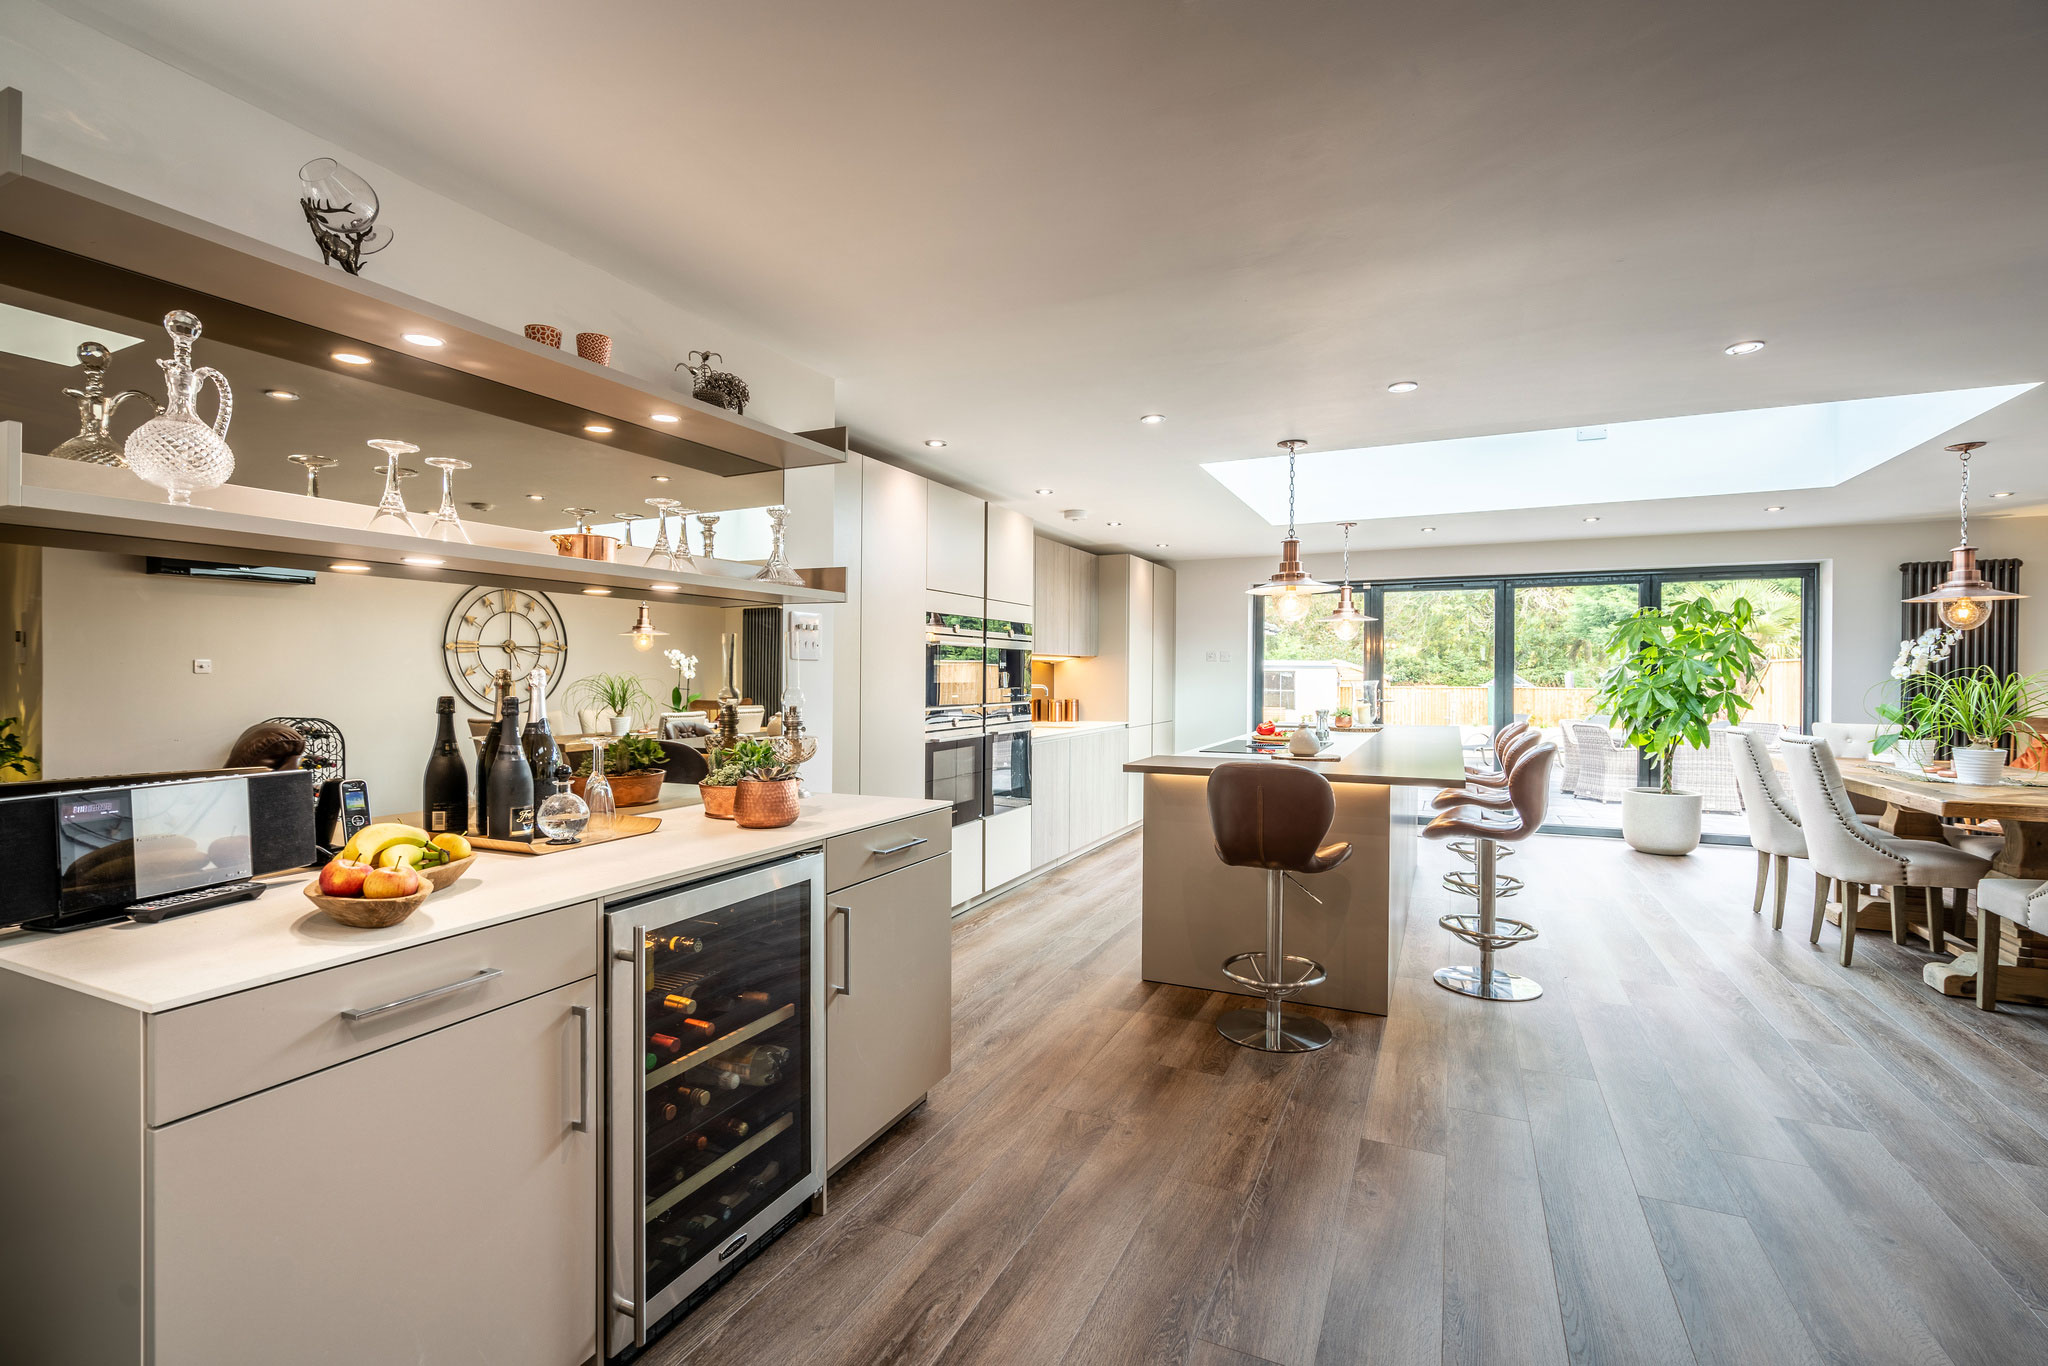 Image of Myers Touch Daniels Kitchen 01043 HDR ZF 2442 14358 1 035 in A space designed for socializing - Cosentino